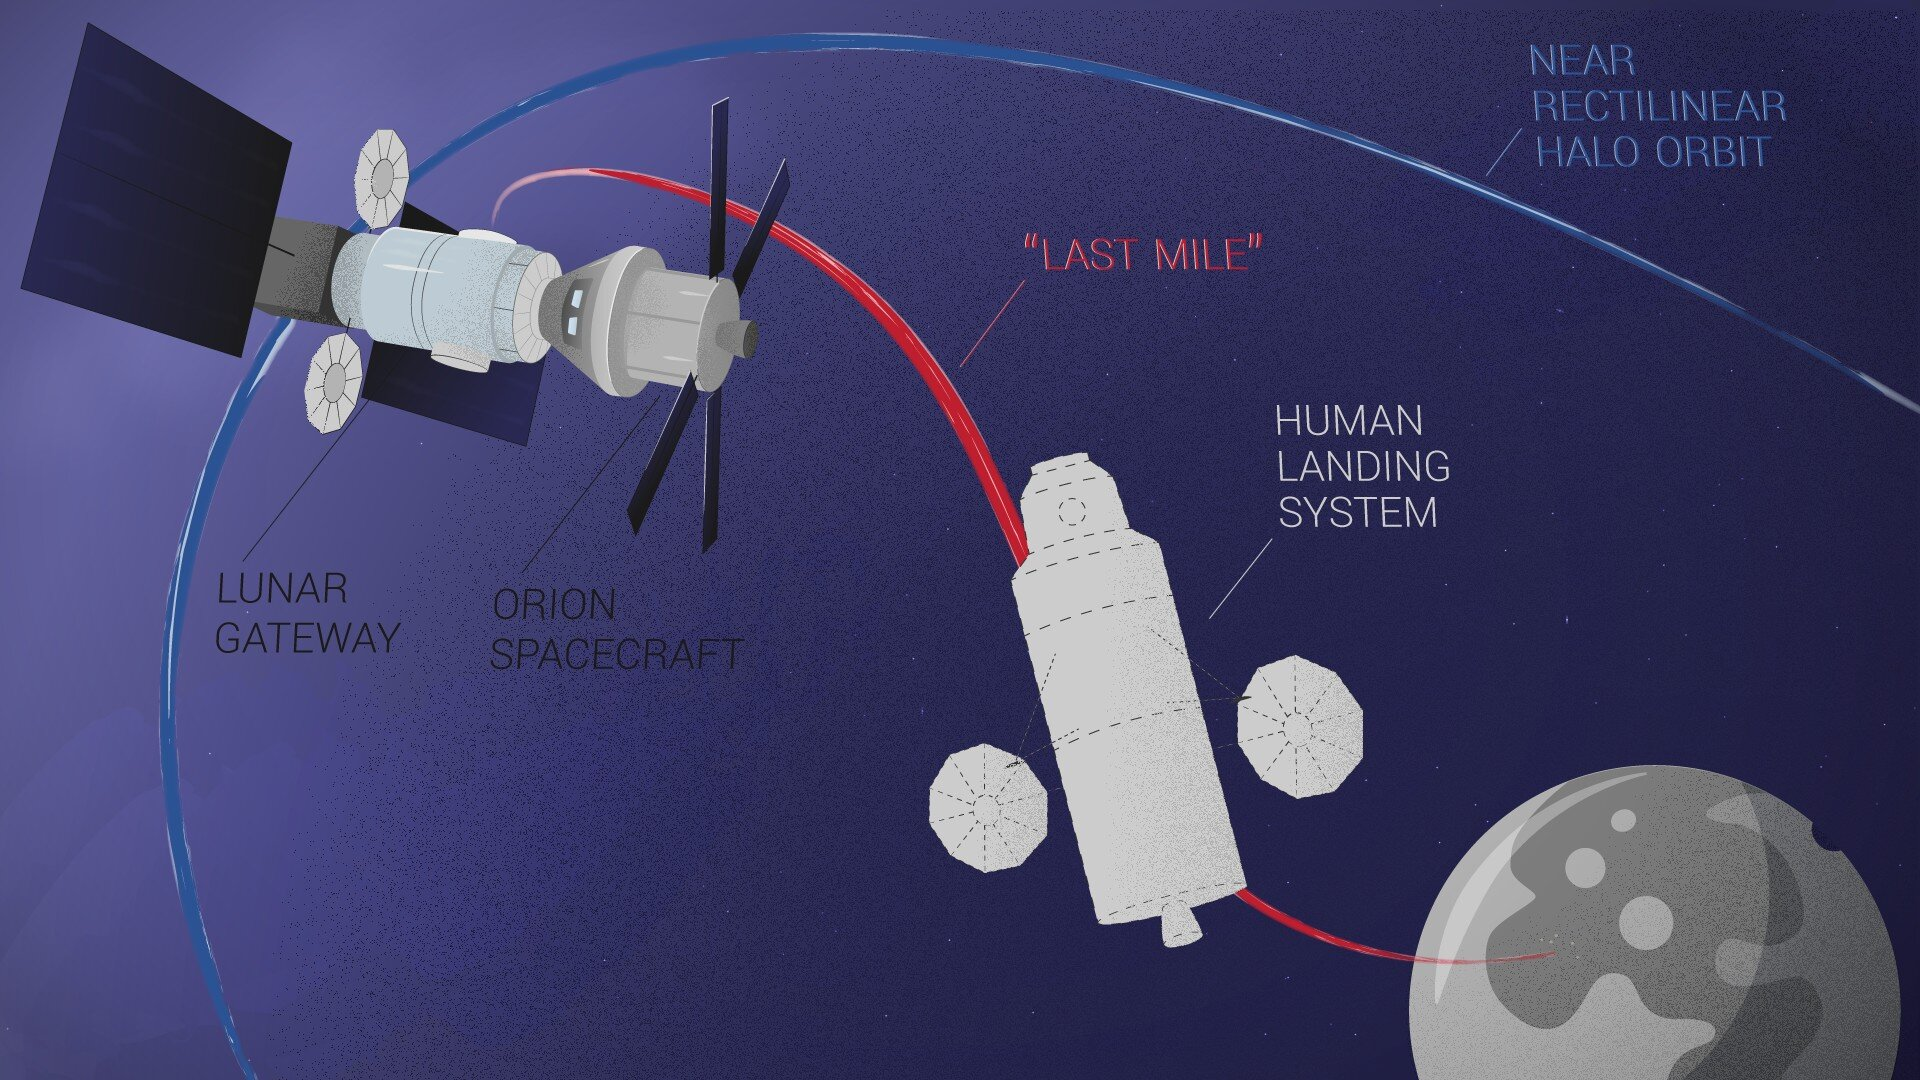 Researchers identify optimal human landing system architectures to land on the Moon